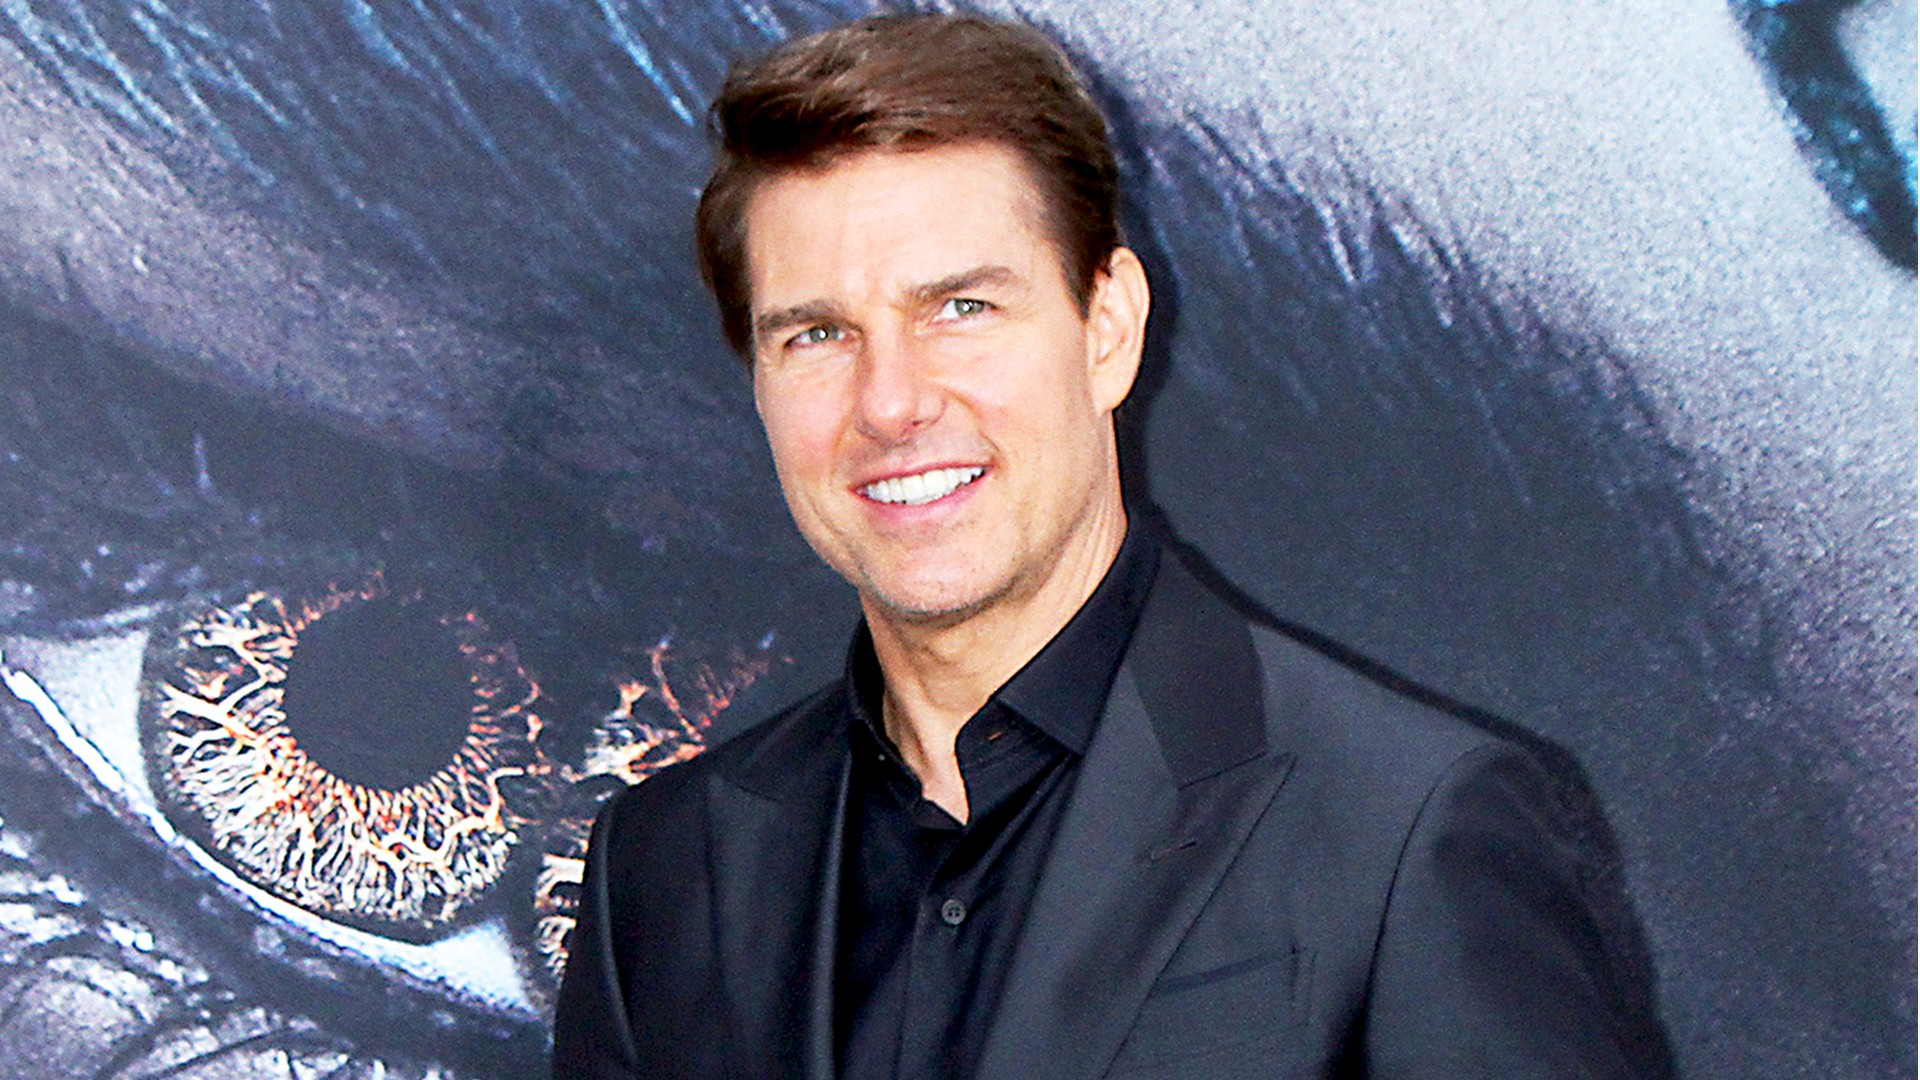 Free Download American Actor Tom Cruise Hd Photo Hd Wallpapers 1920x1080 For Your Desktop Mobile Tablet Explore 50 Hi Res Wallpaper Tom Cruise Hi Res Wallpaper Tom Cruise Wallpaper